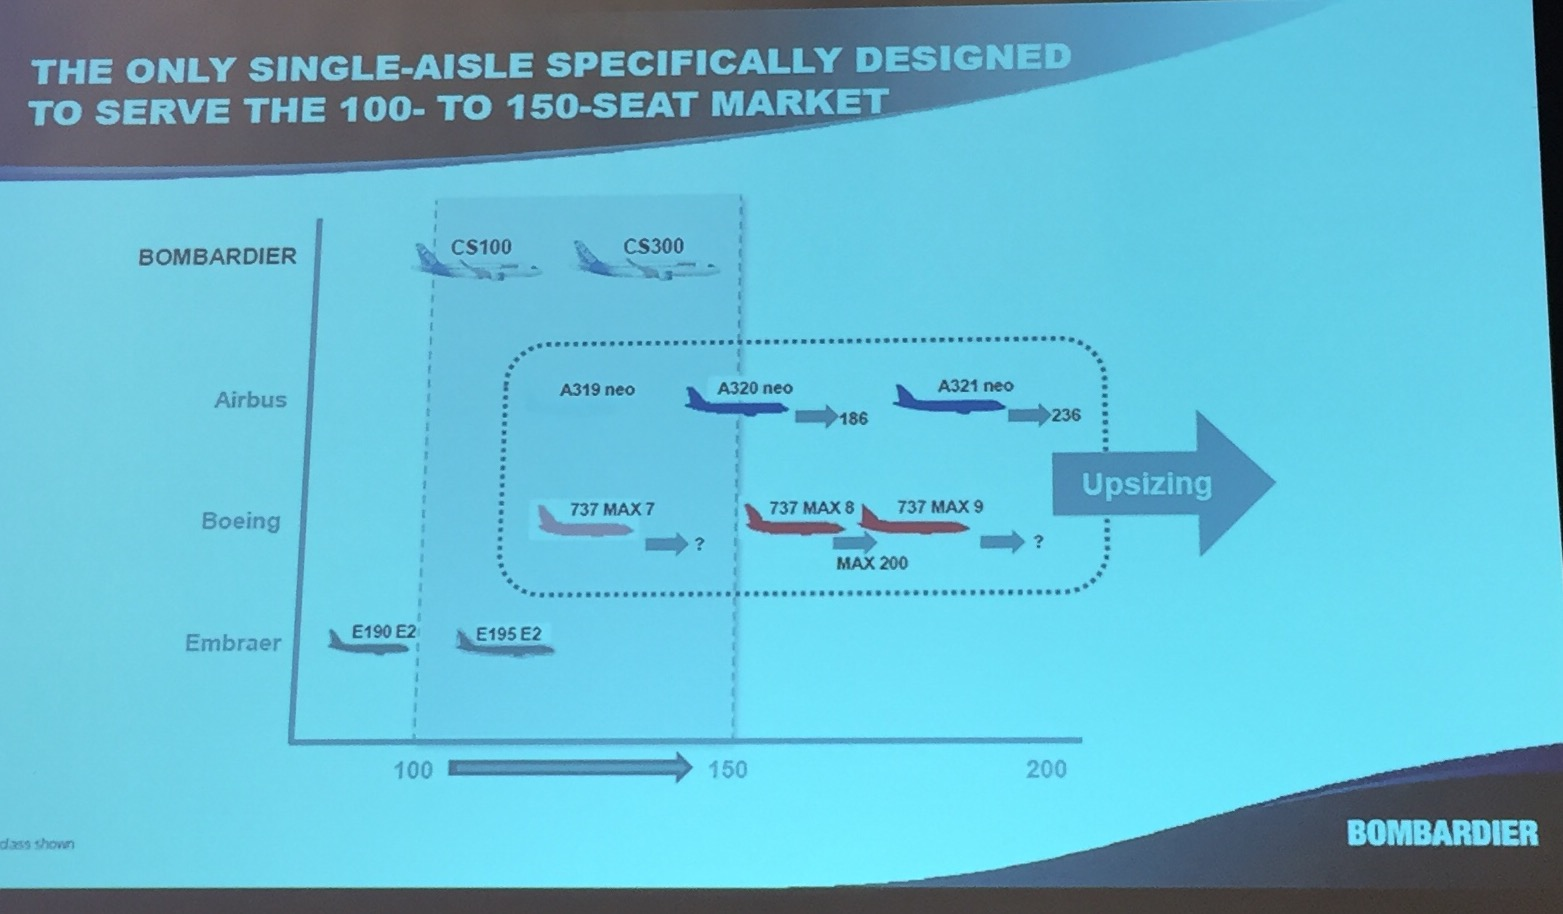 And here the market positioning of both models of the Bombardier CSeries, the CS100 and CS300